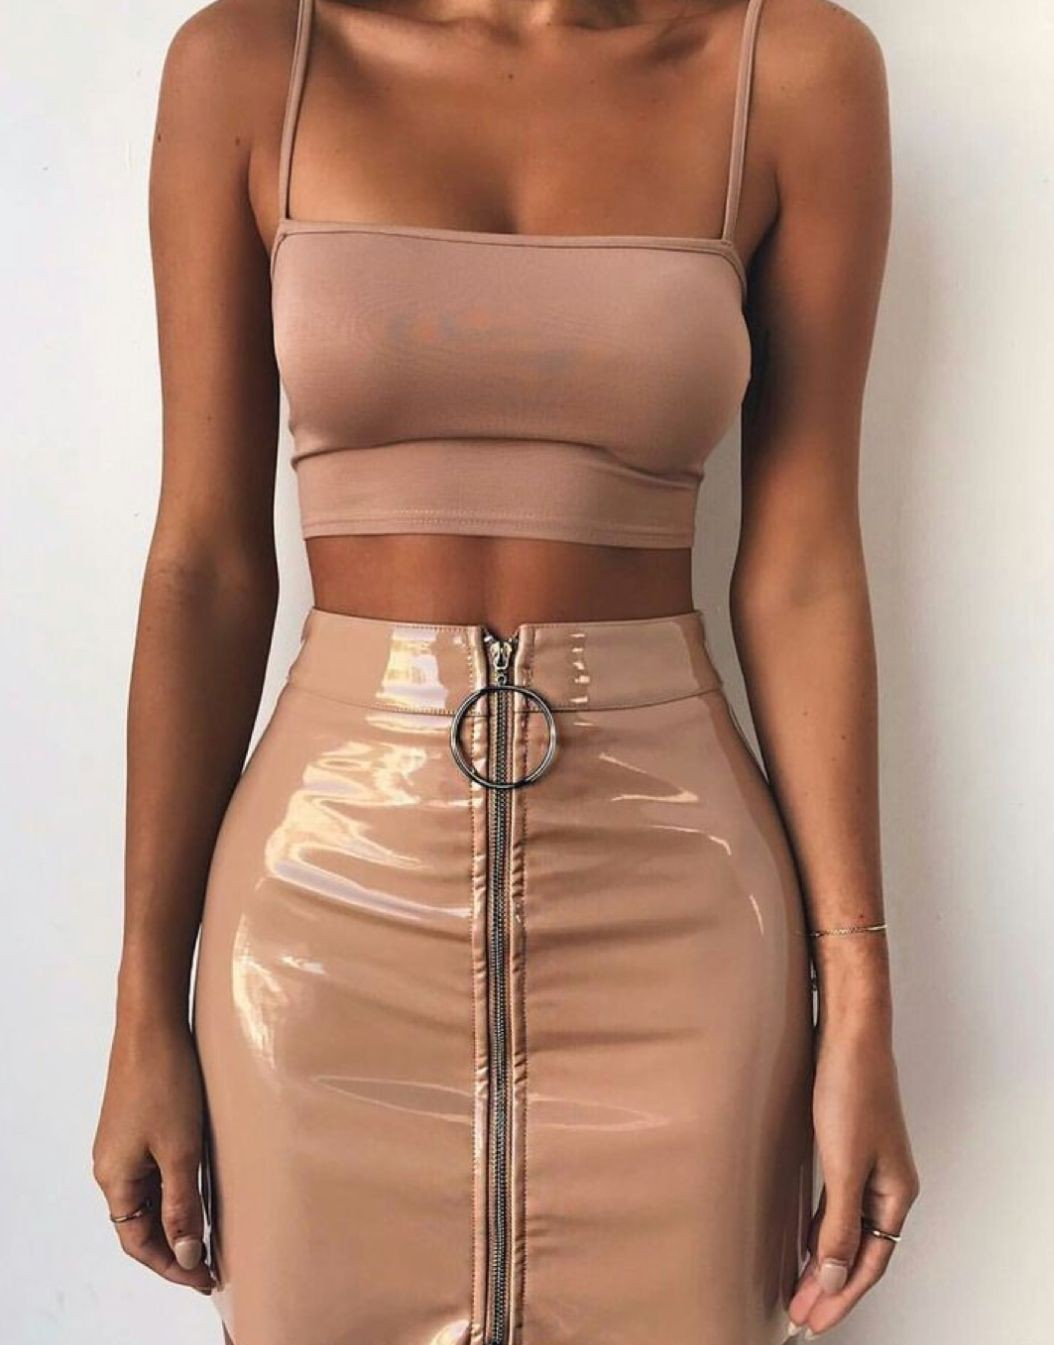 Aesthetic Rose Gold Clothes Cocktail Dress Crop Top Bandeau Top Outfits Bandeau Dresses Brown And Beige Outfit Cocktail Dress